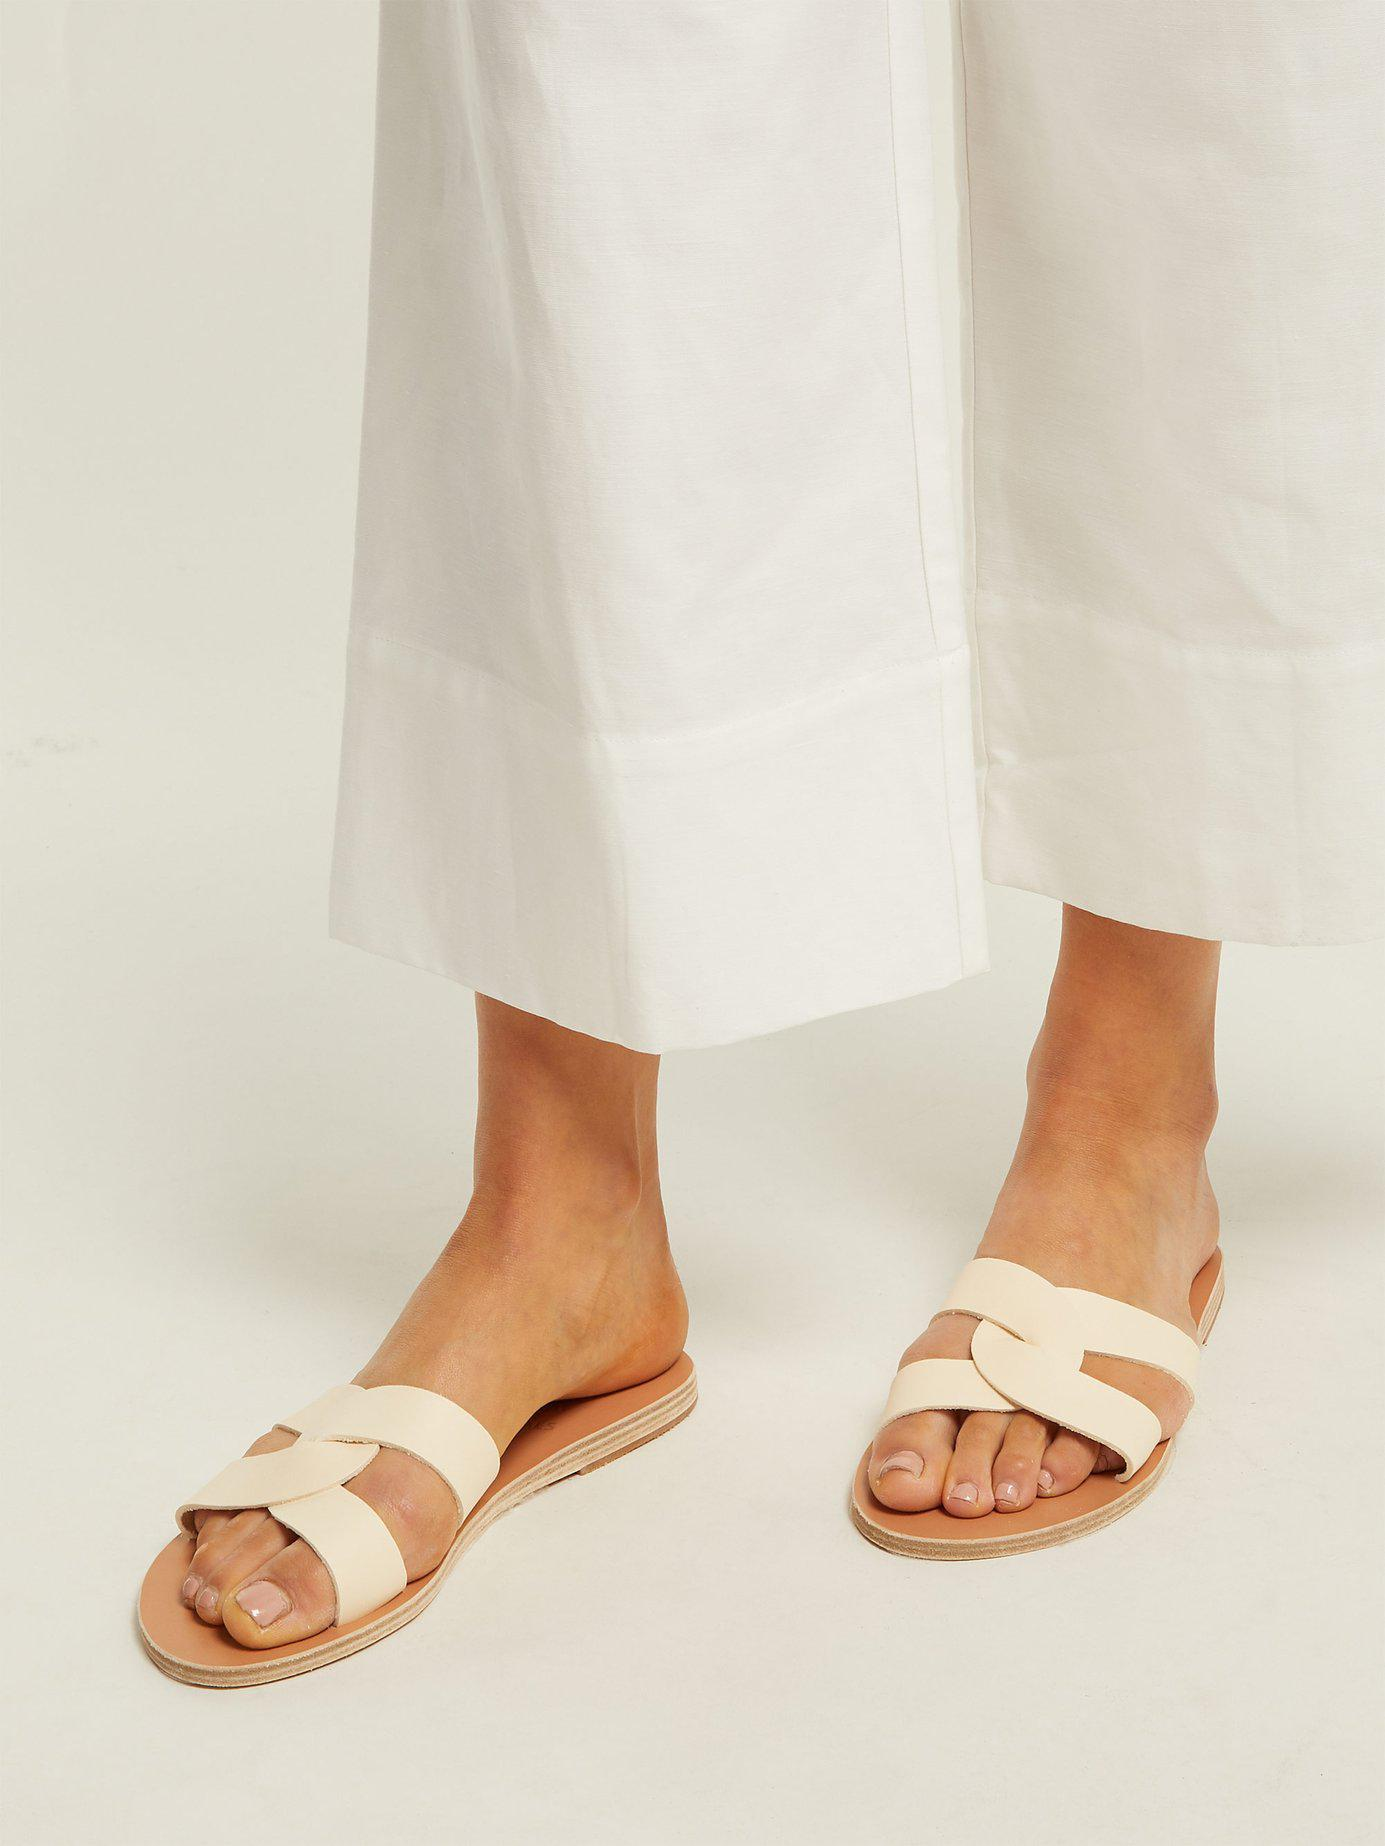 5d4d7a42bae80 Ancient Greek Sandals Desmos Leather Slides in White - Lyst